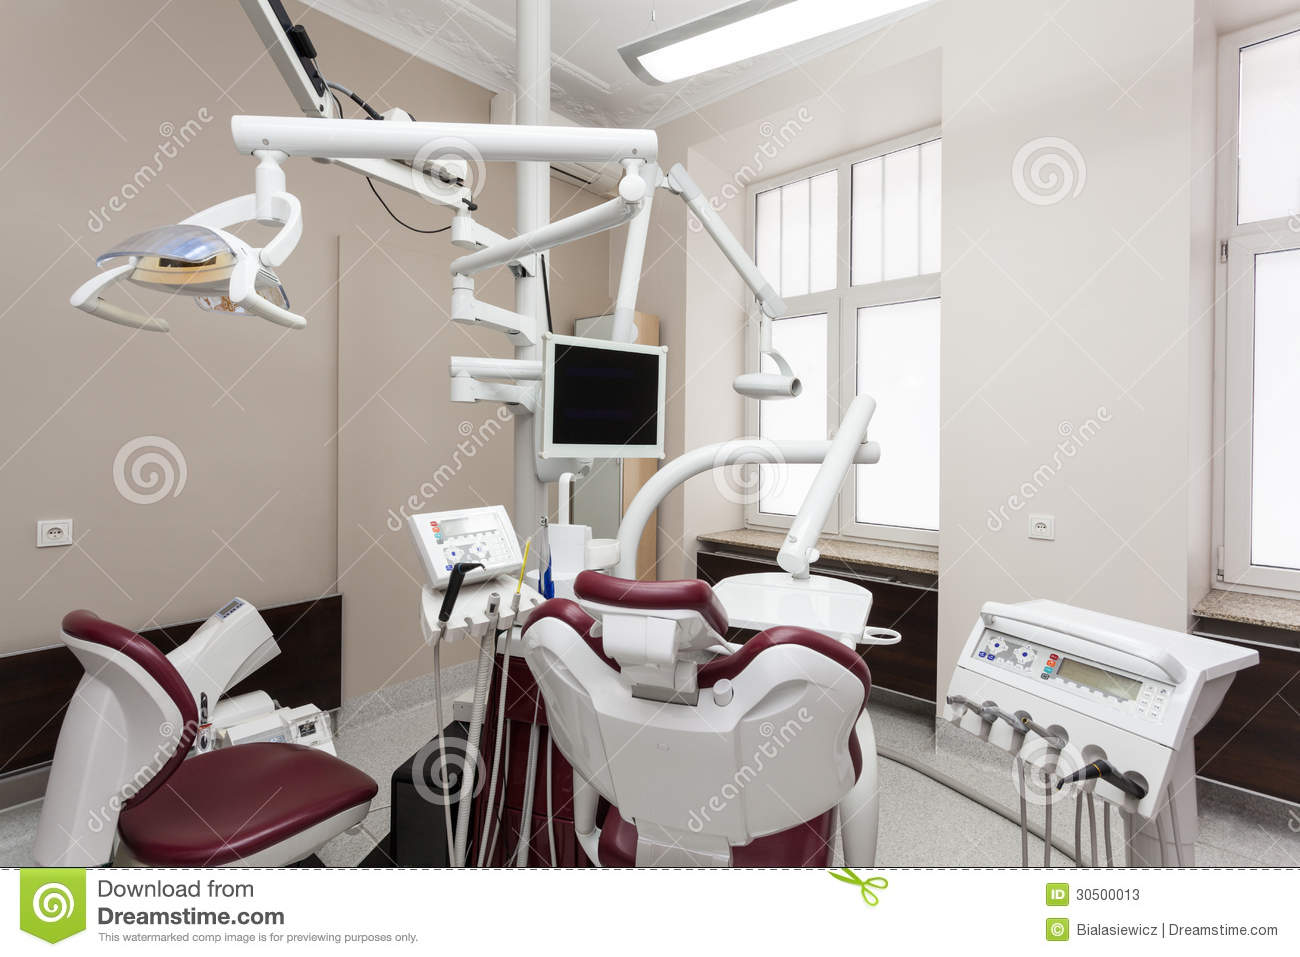 Dental Office Stock Photos - Image: 30500013